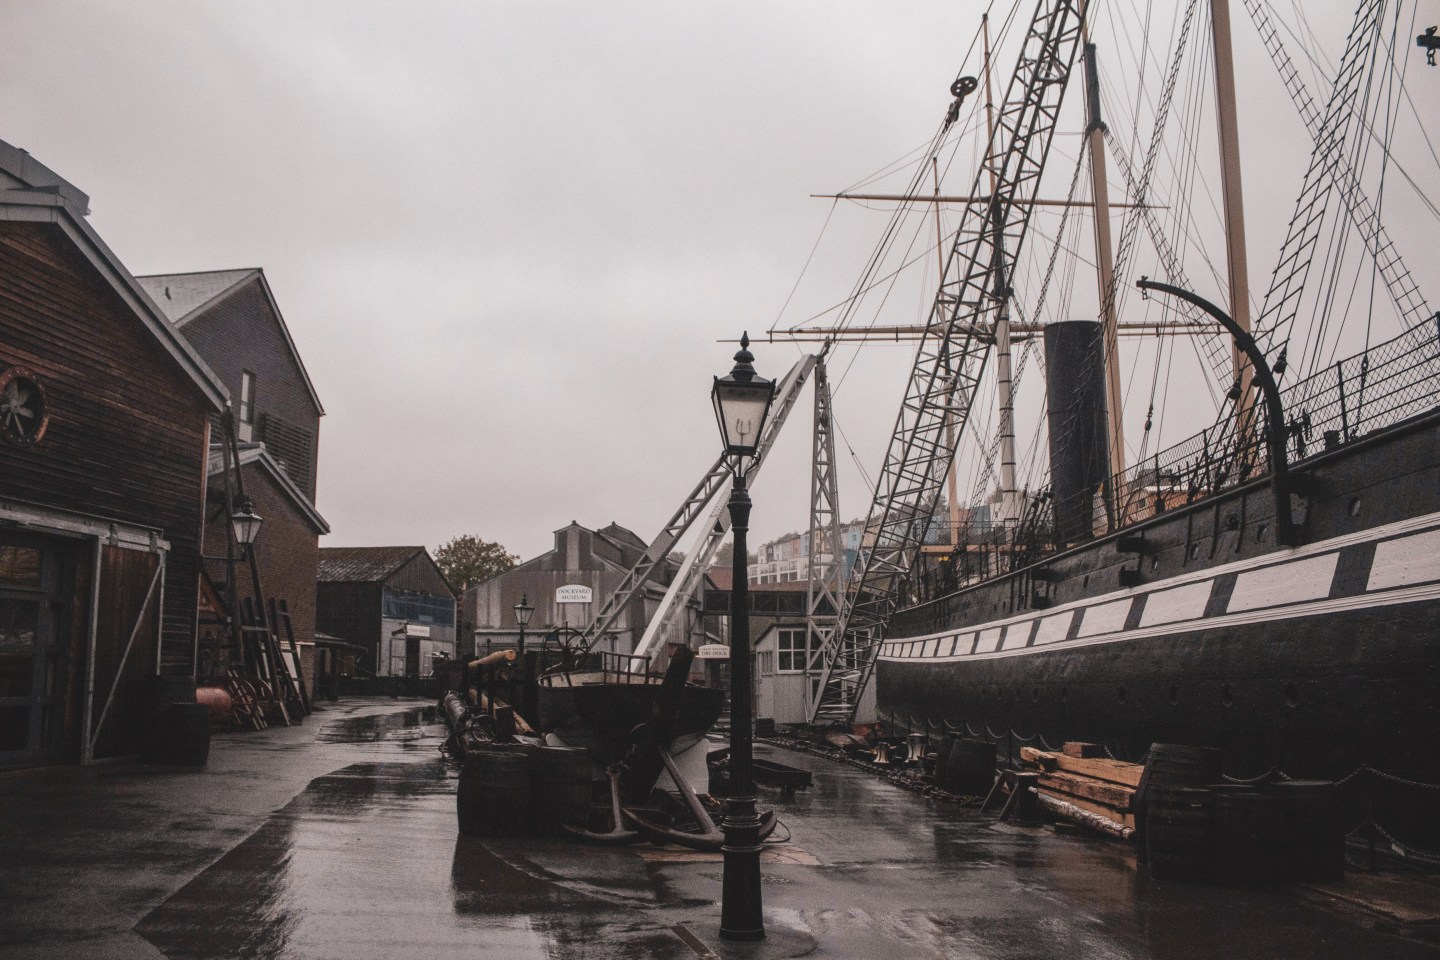 Visit Bristol In One Day Trip - Visit the SS Great Britain in Bristol's harbourside for an immersive taste of history, world exploration, and engineering!